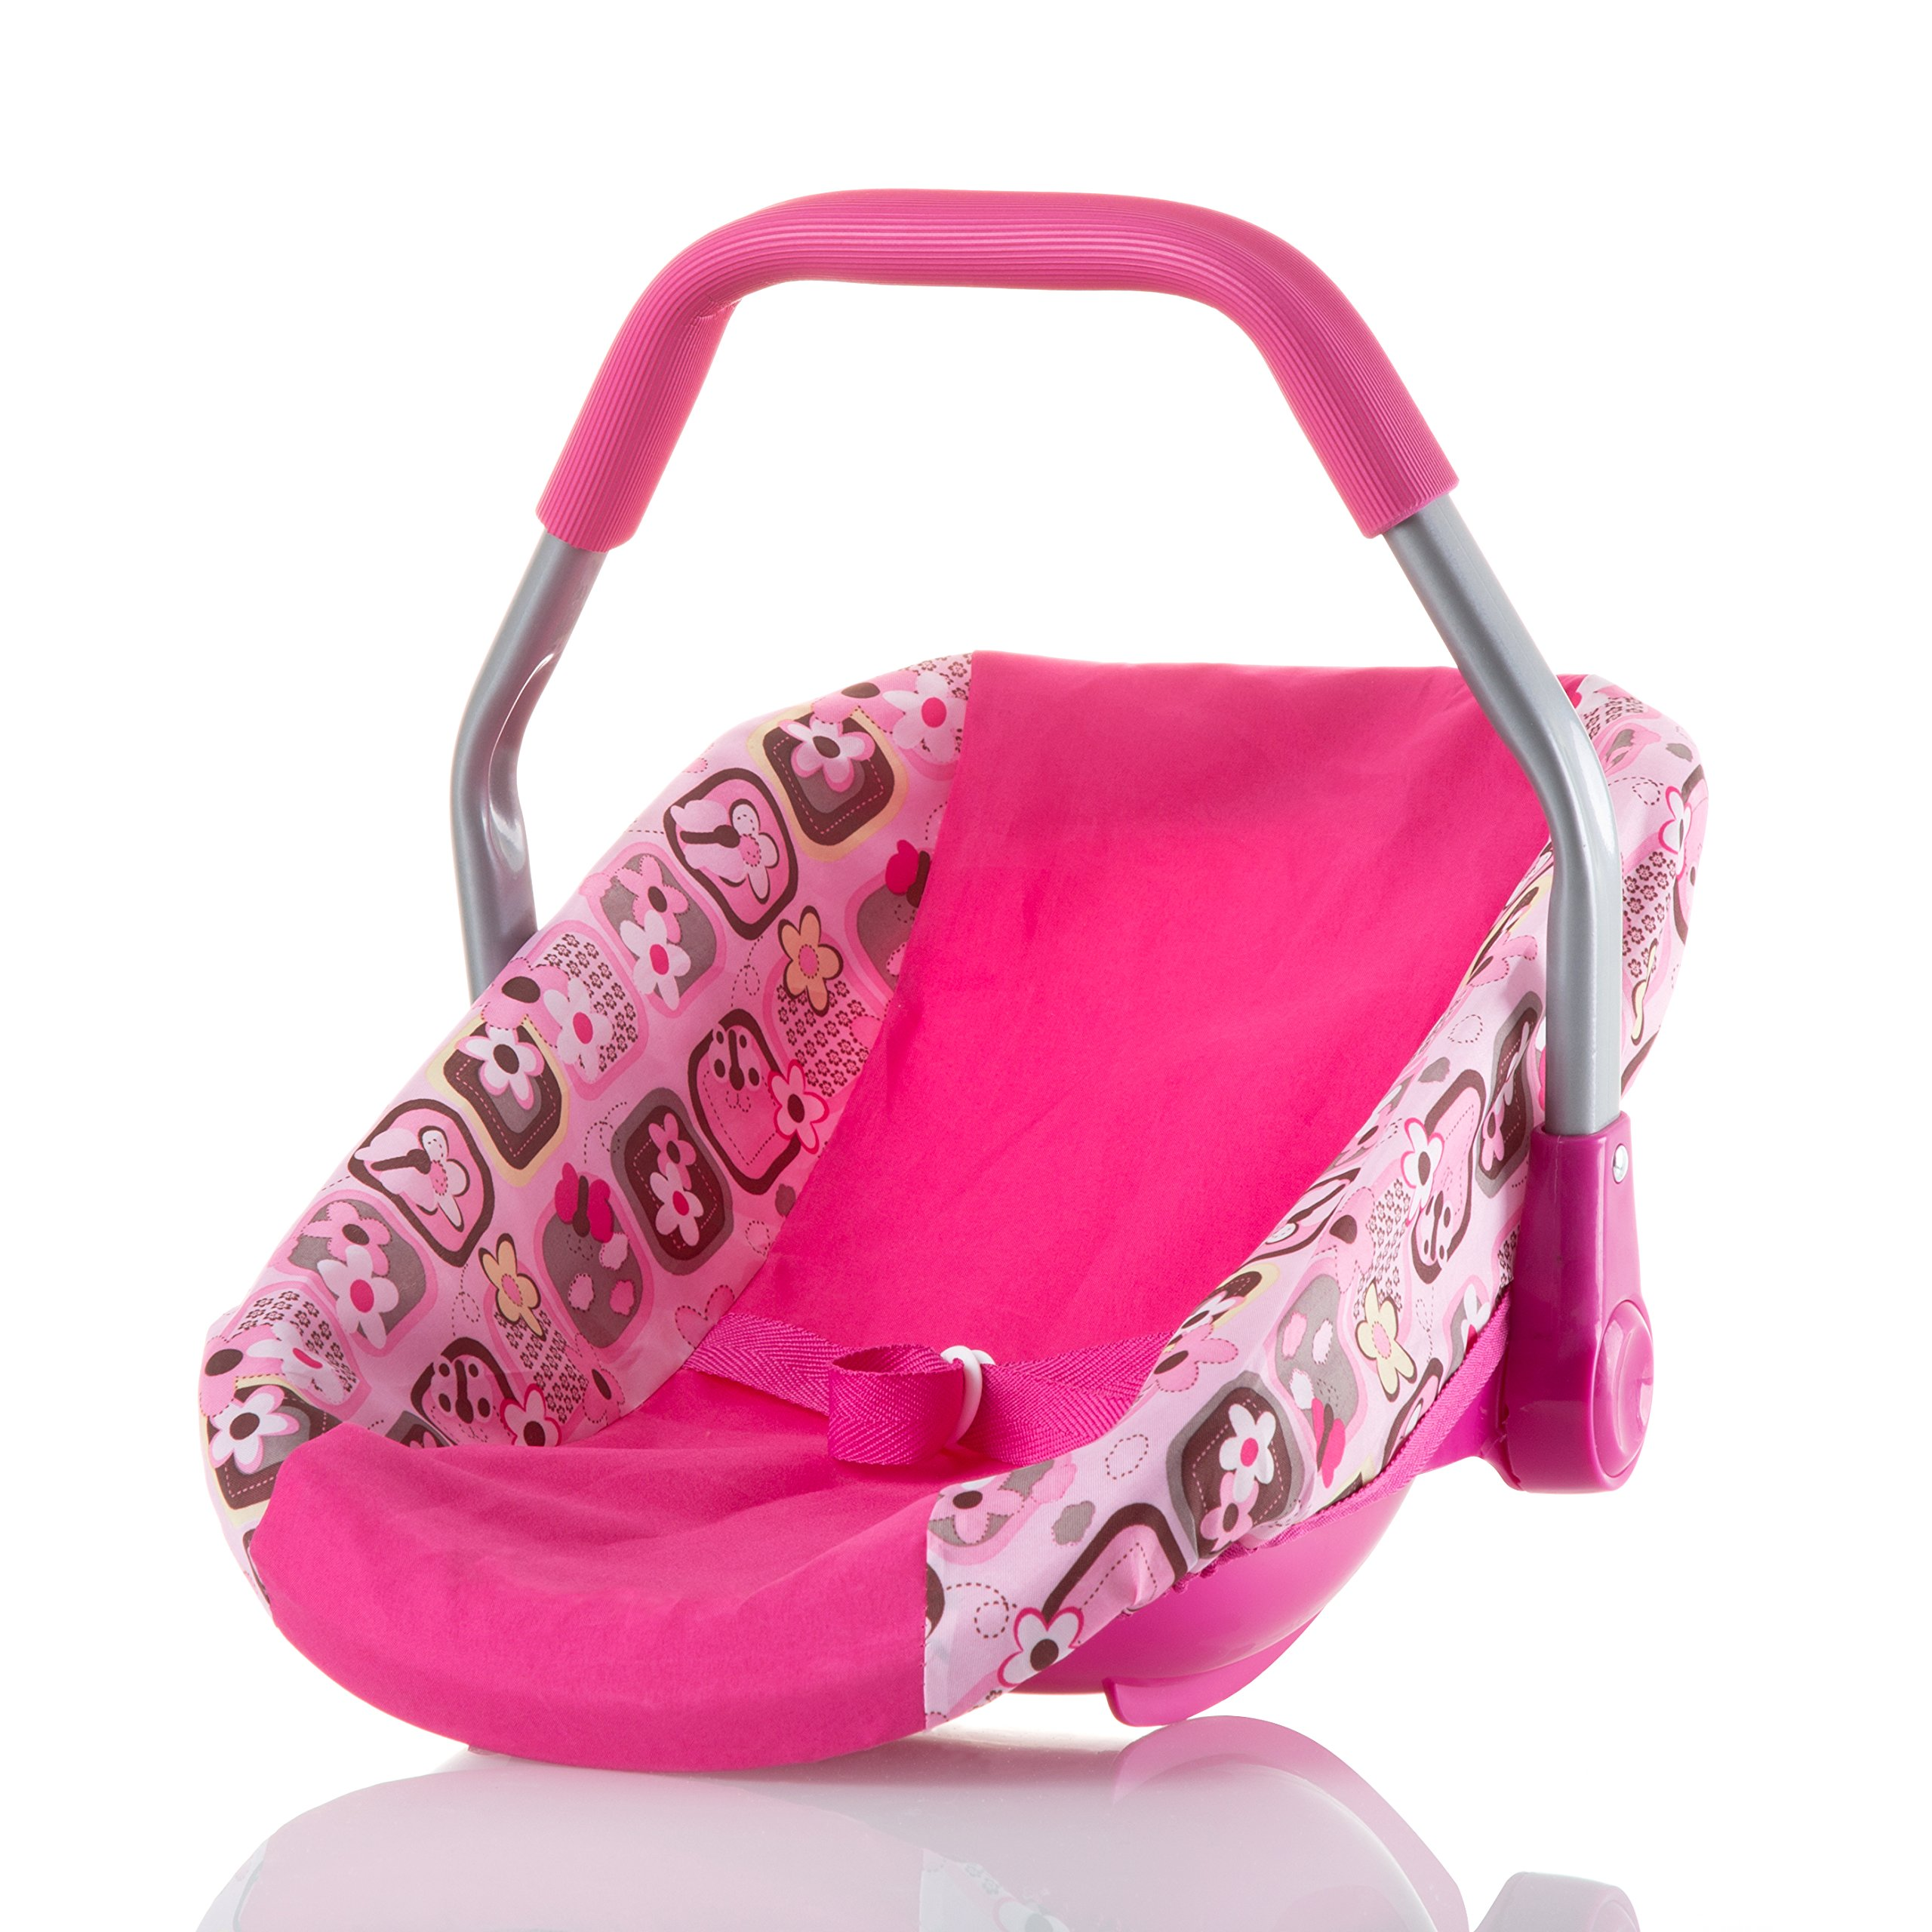 Baby Doll Car Seat | Adorable Baby Girl Doll Car Seat with Washable Cover | Sturdy, Cute, Easy Setup Pink Doll Stroller Car Seat for Dolls & Plush Toys | Great Gifting Idea Doll Carrier SeatBaby Doll